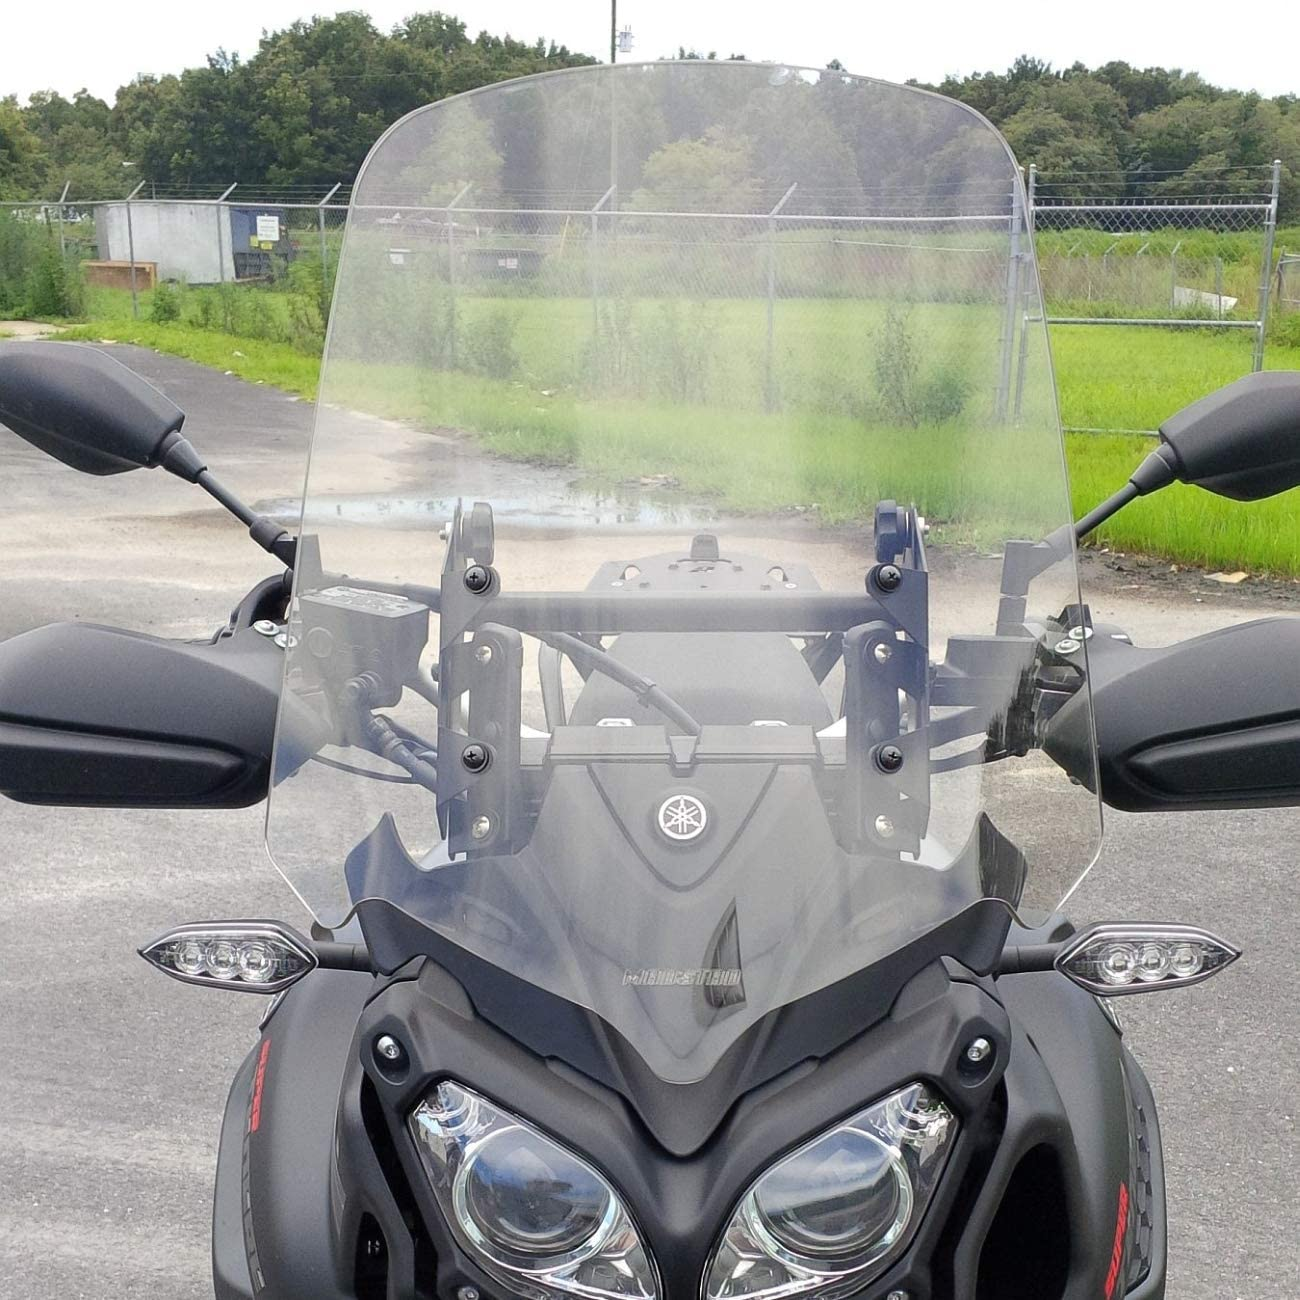 Yamaha Super Tenere XT1200Z Compatible 18, Clear 2014 - Up Adjustable Motorcycle Windshield System by Madstad Engineering